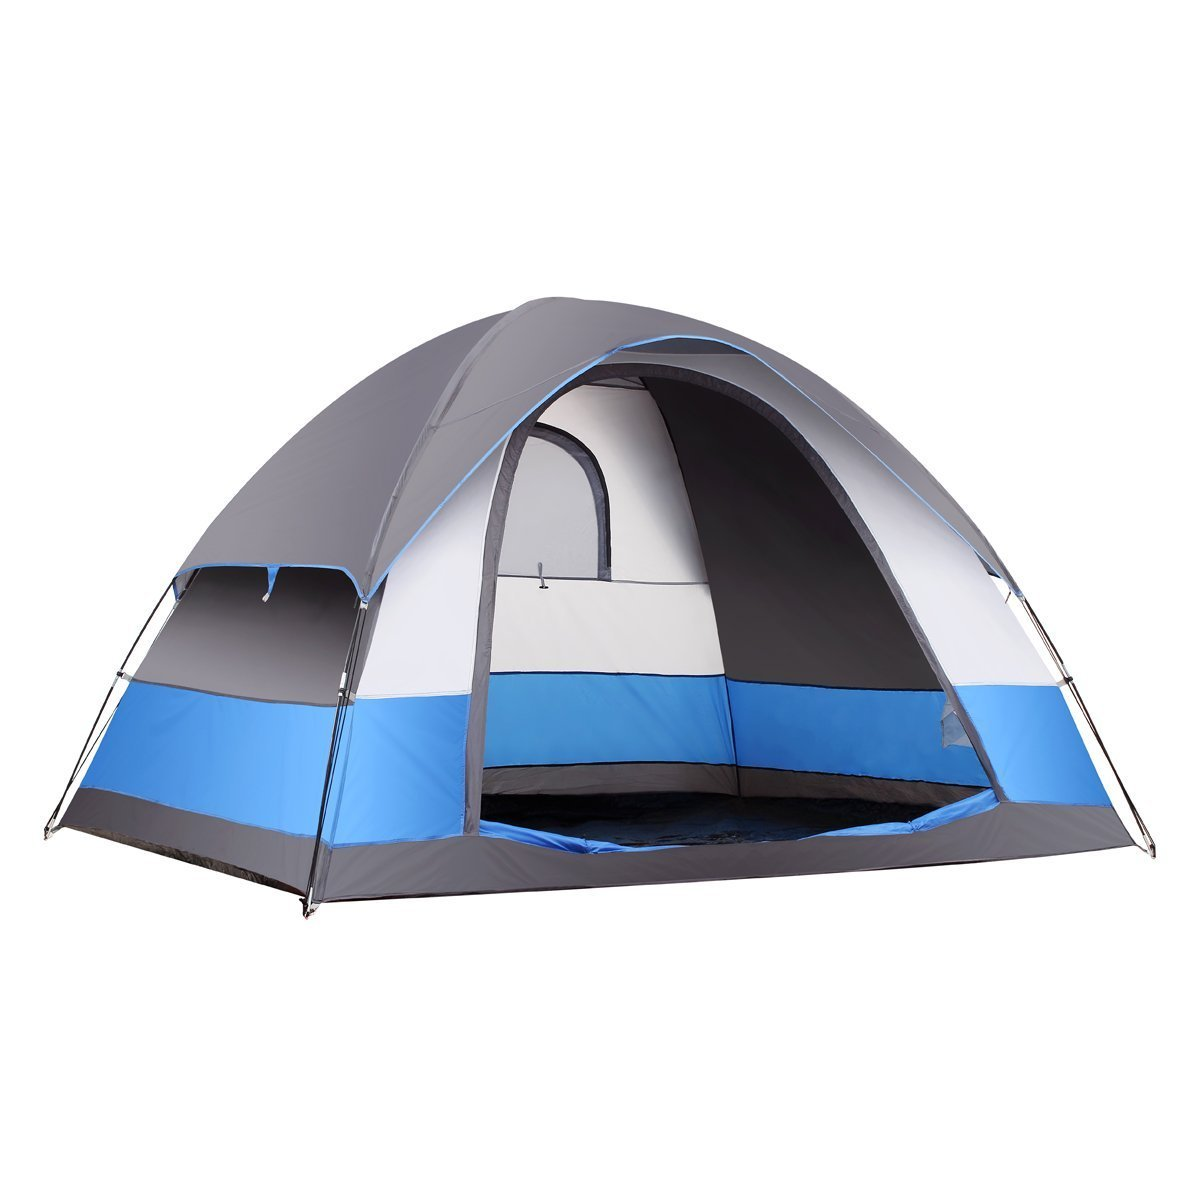 SEMOO Water Resistant 5 Person 3-Season Lightweight Family Dome Tent for Camping with Carry Bag